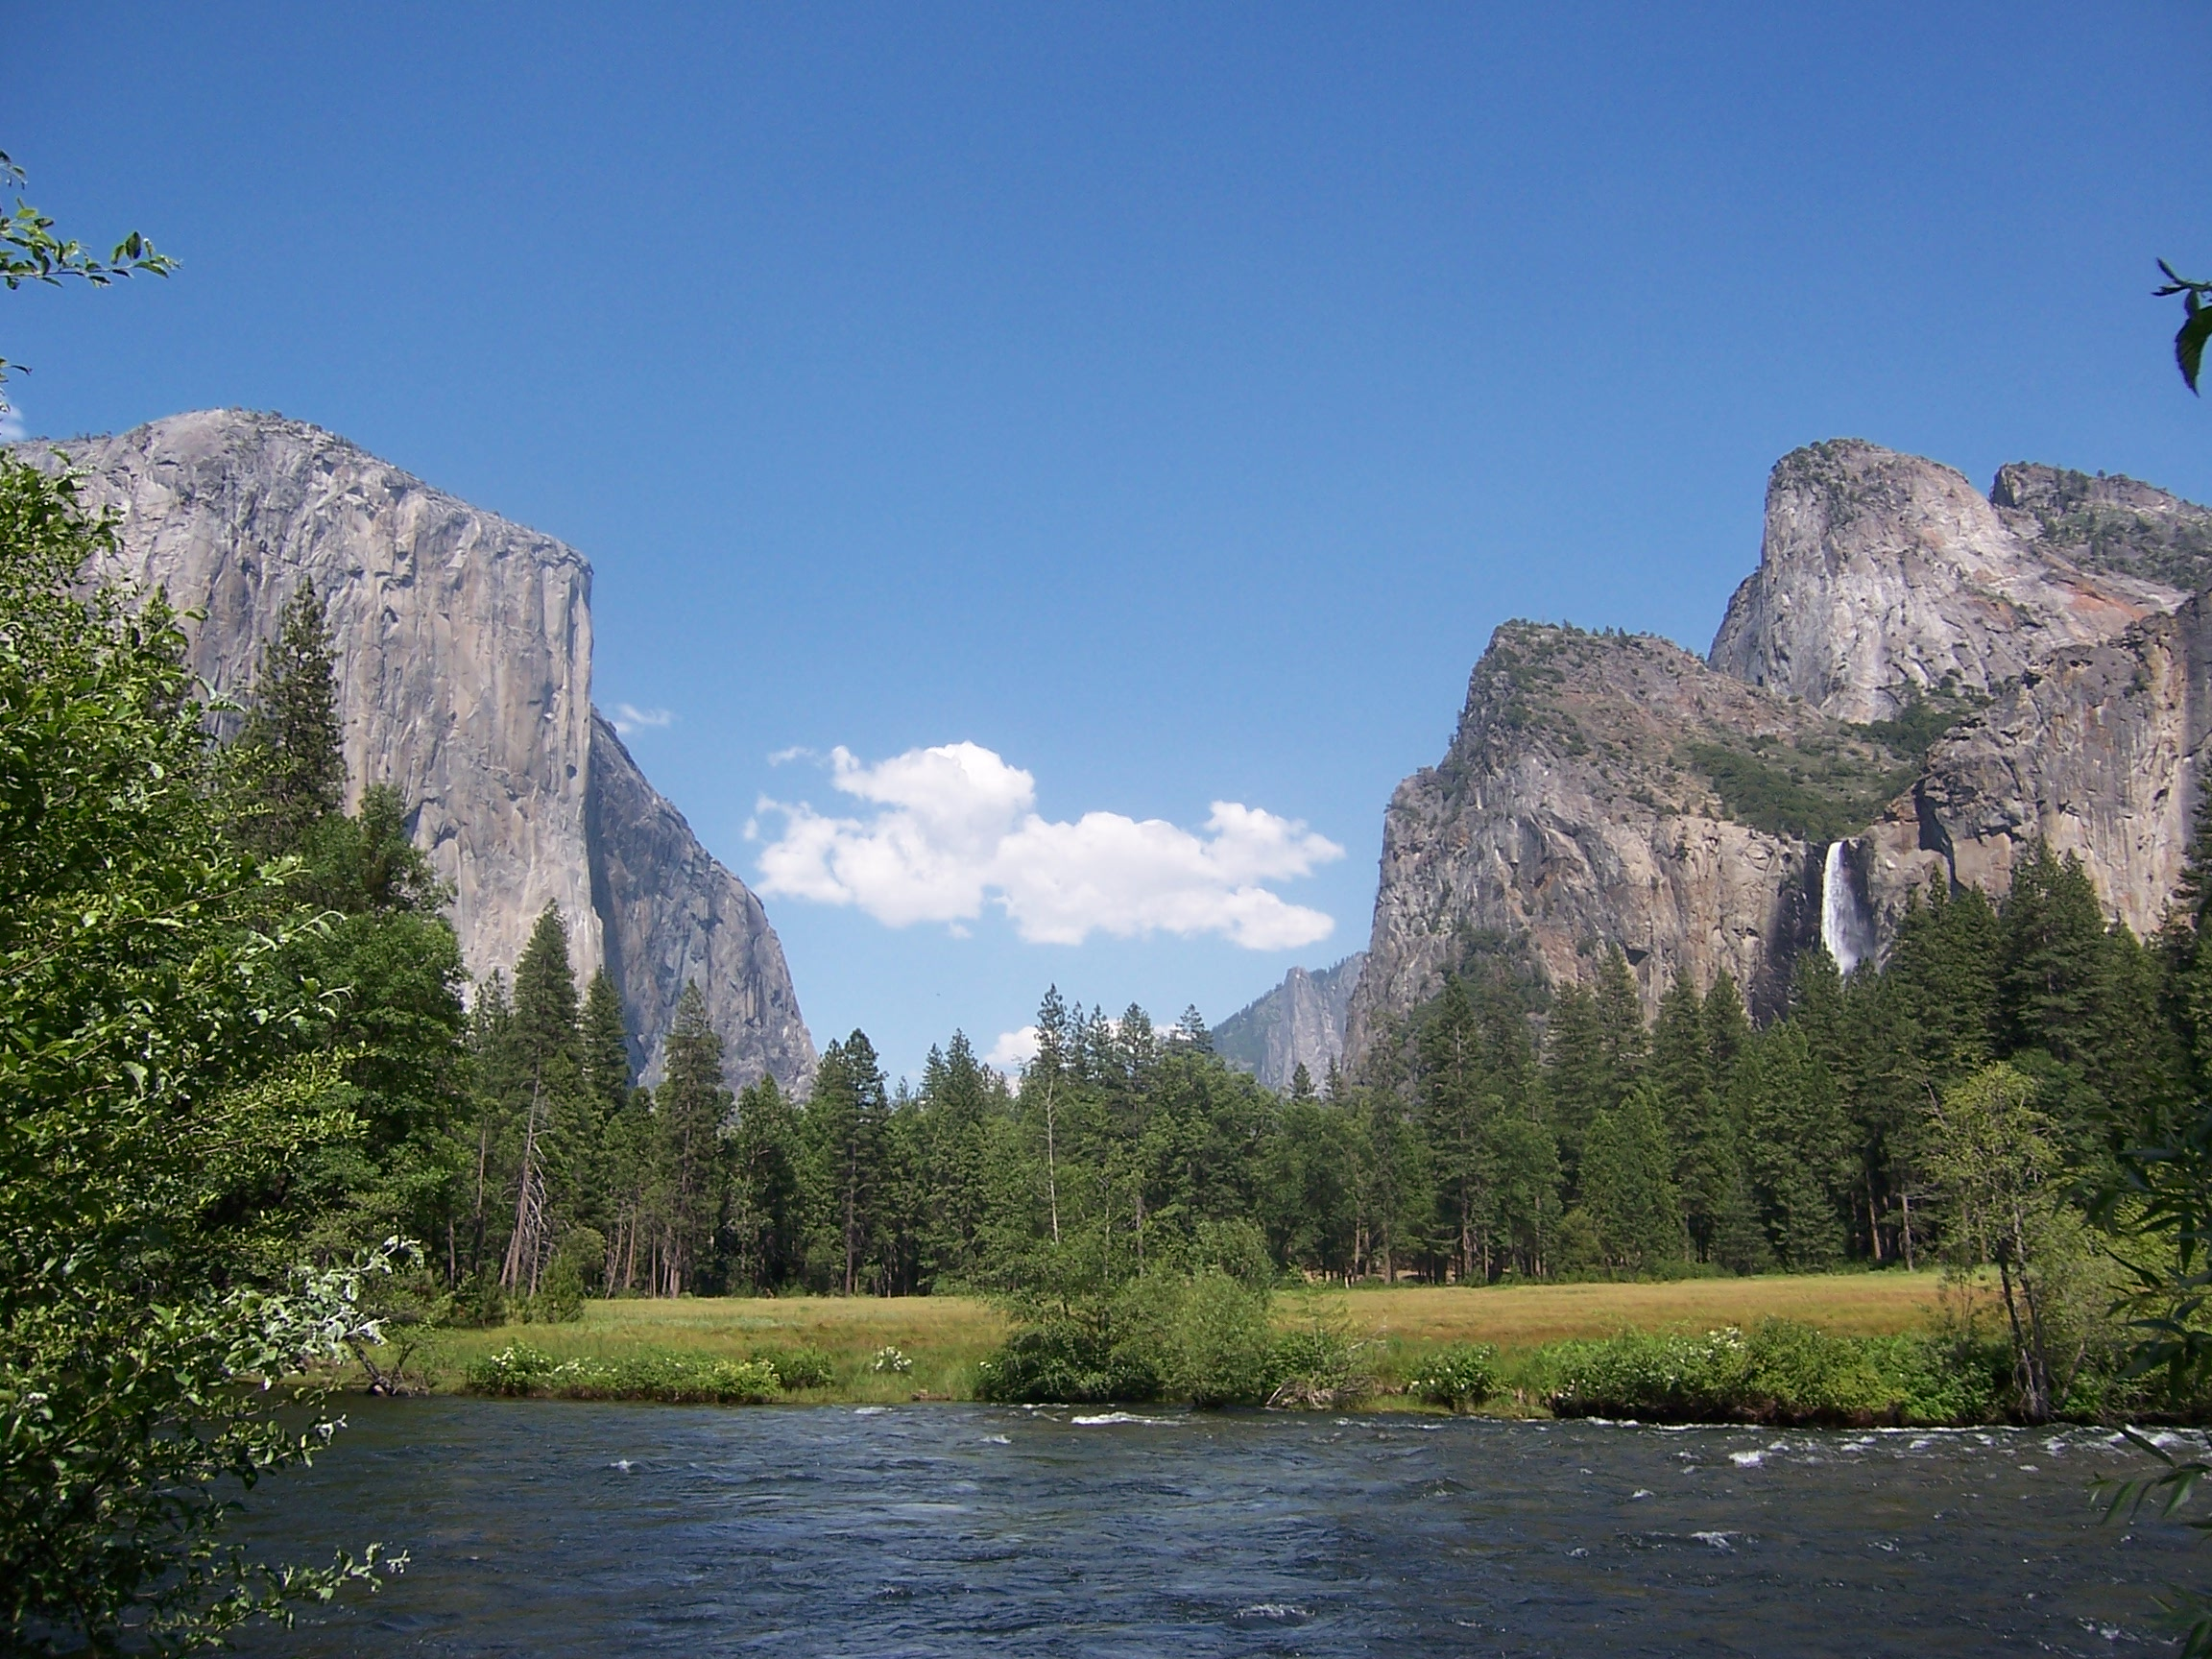 Yosemite HD Wallpapers Hd Wallpapers 2304x1728